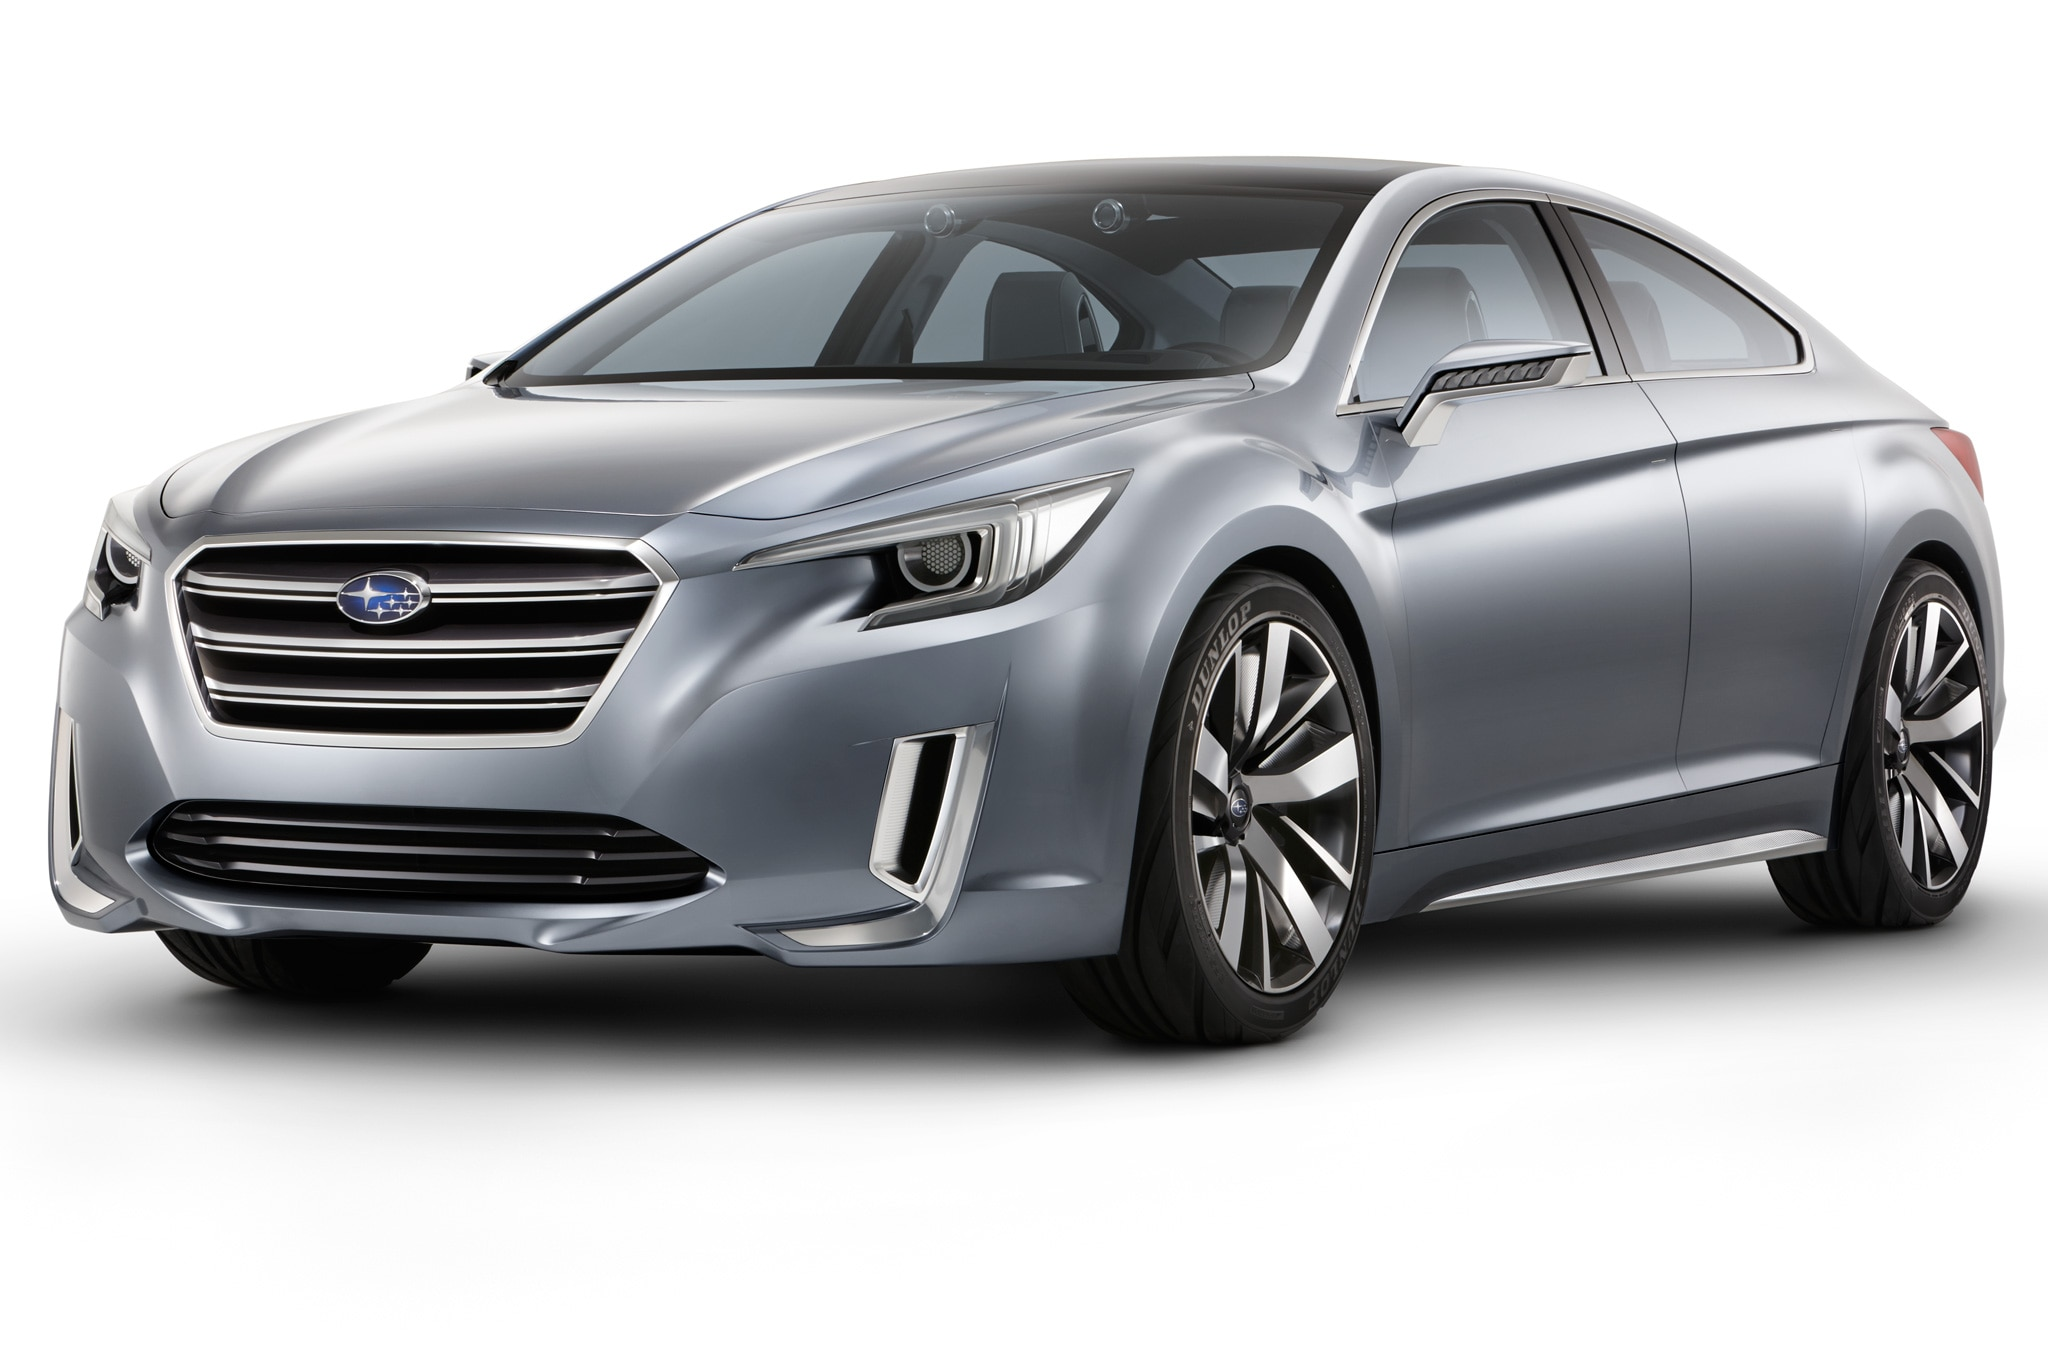 2015 Subaru Legacy Concept Front Side View1